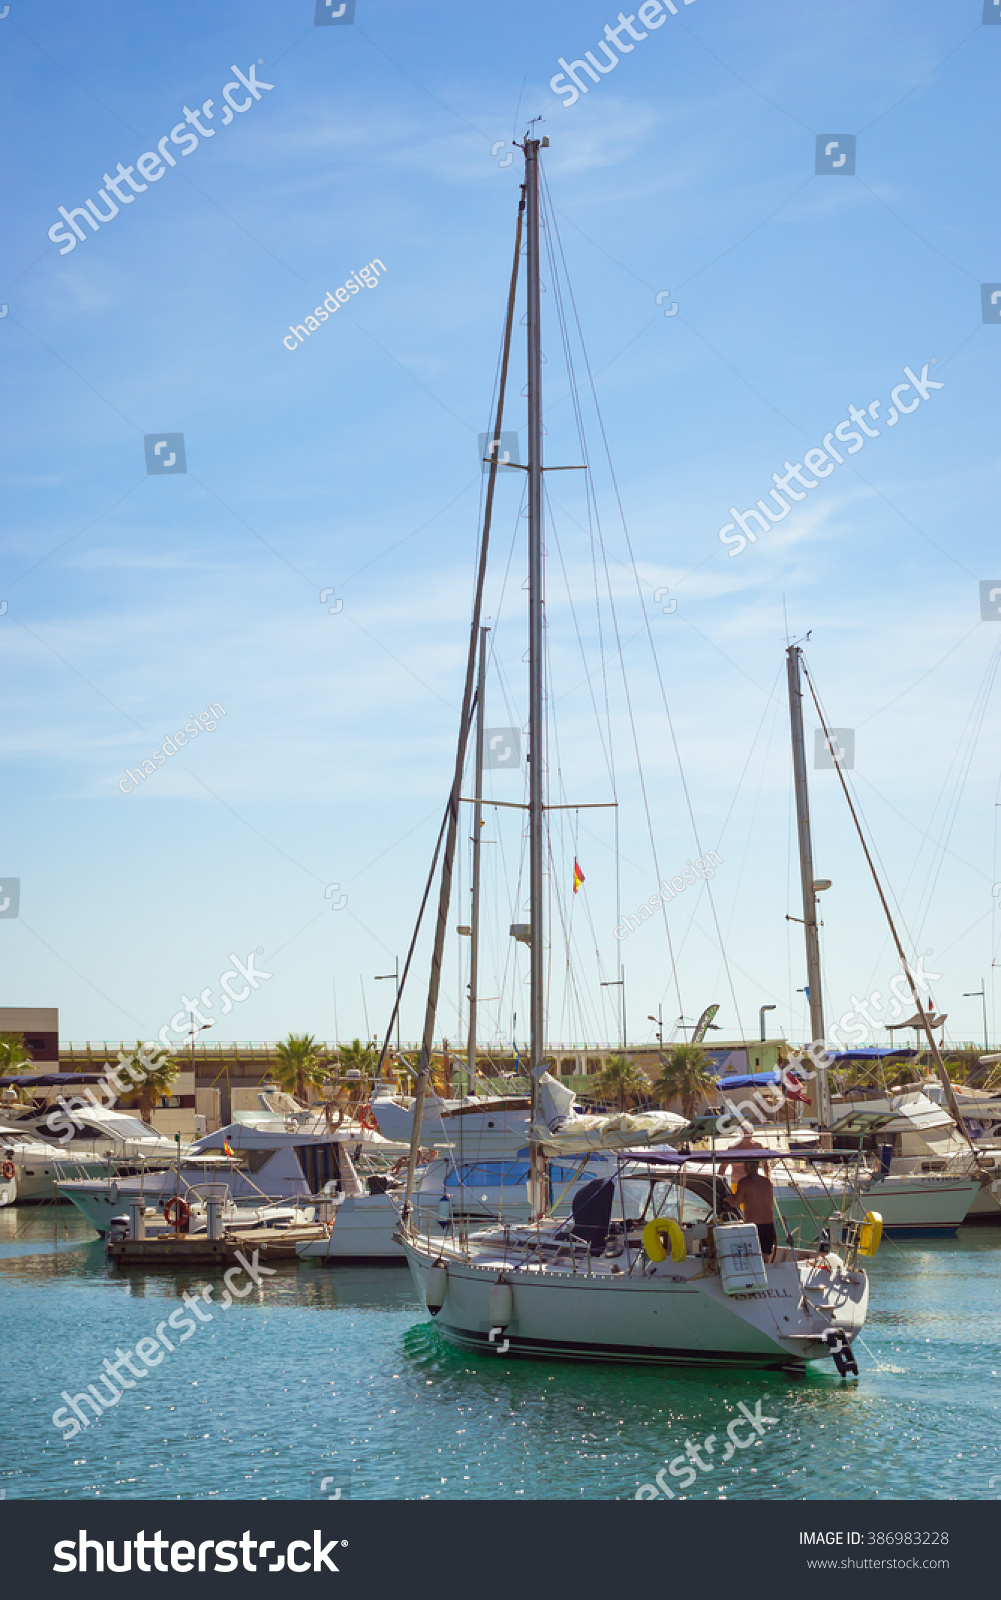 Torrevieja spain september 13 2014 puerto stock photo for Z yachting torrevieja